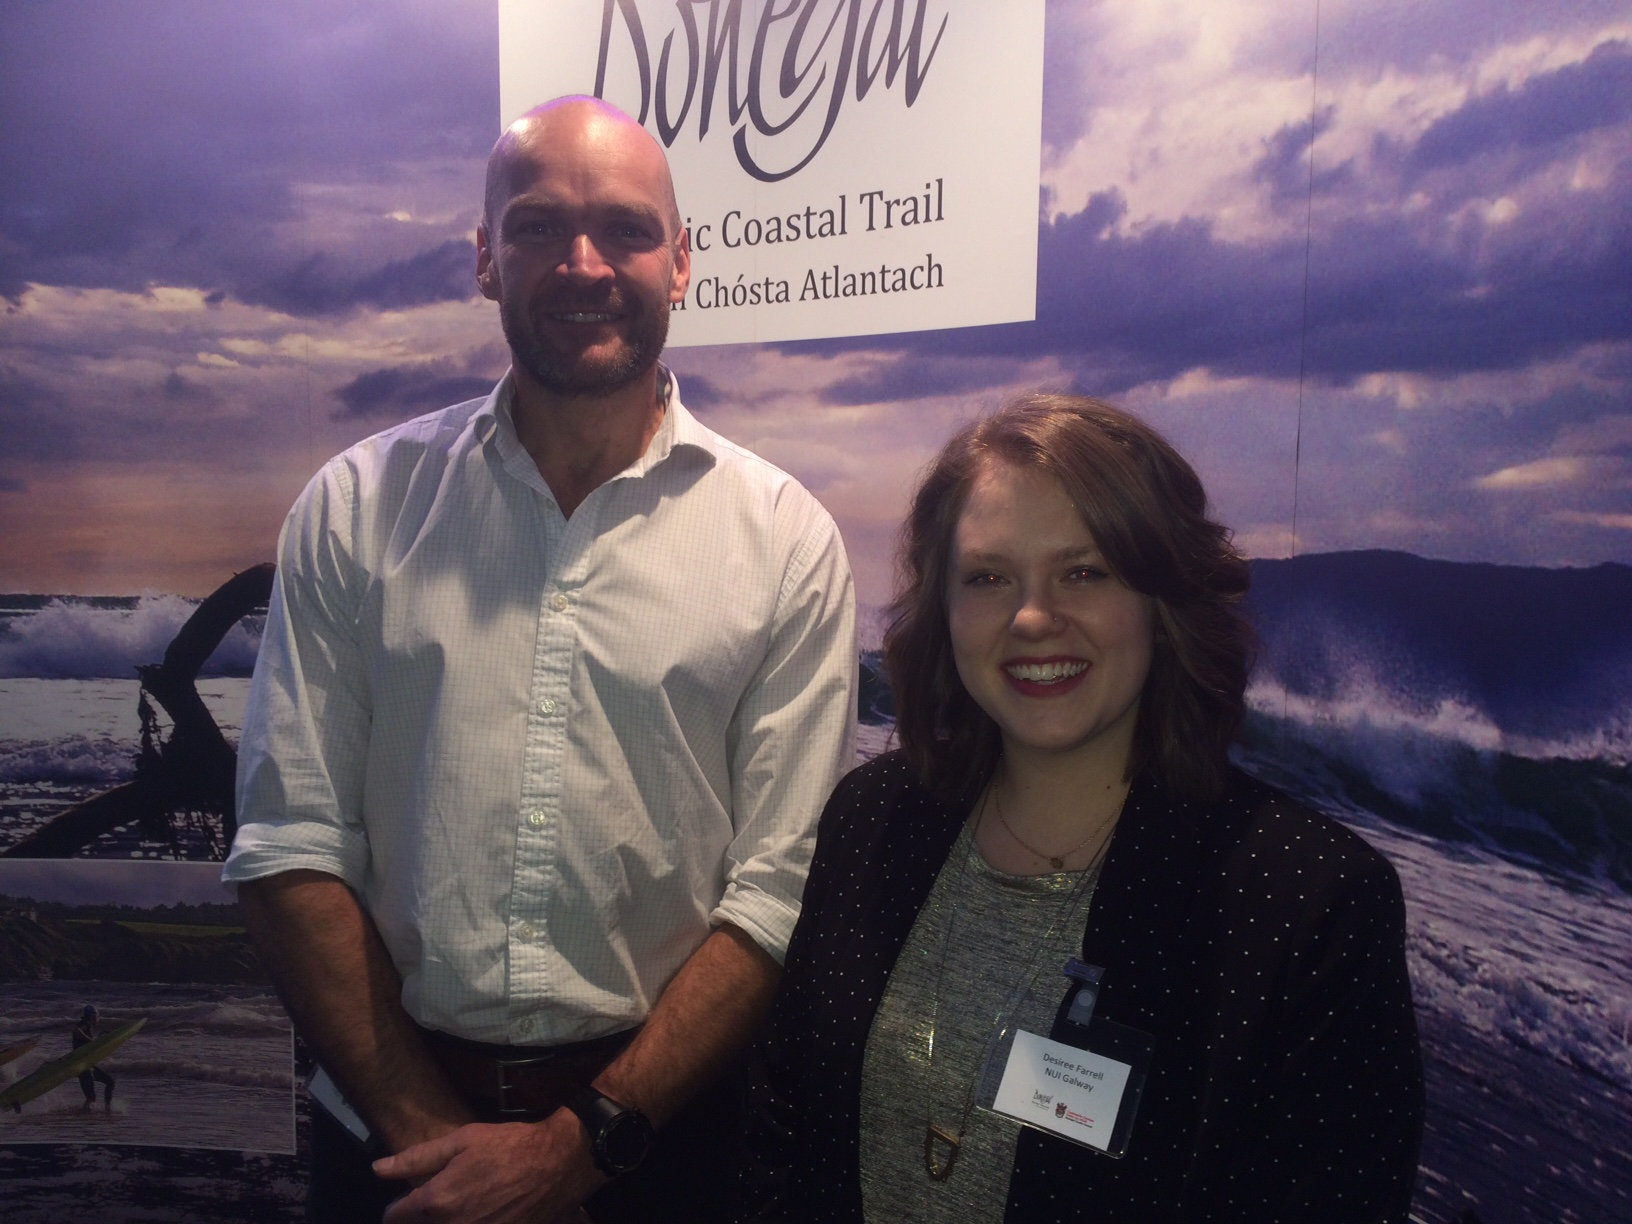 Donegal Marine Tourism Conference: Connecting Our Coastline-image